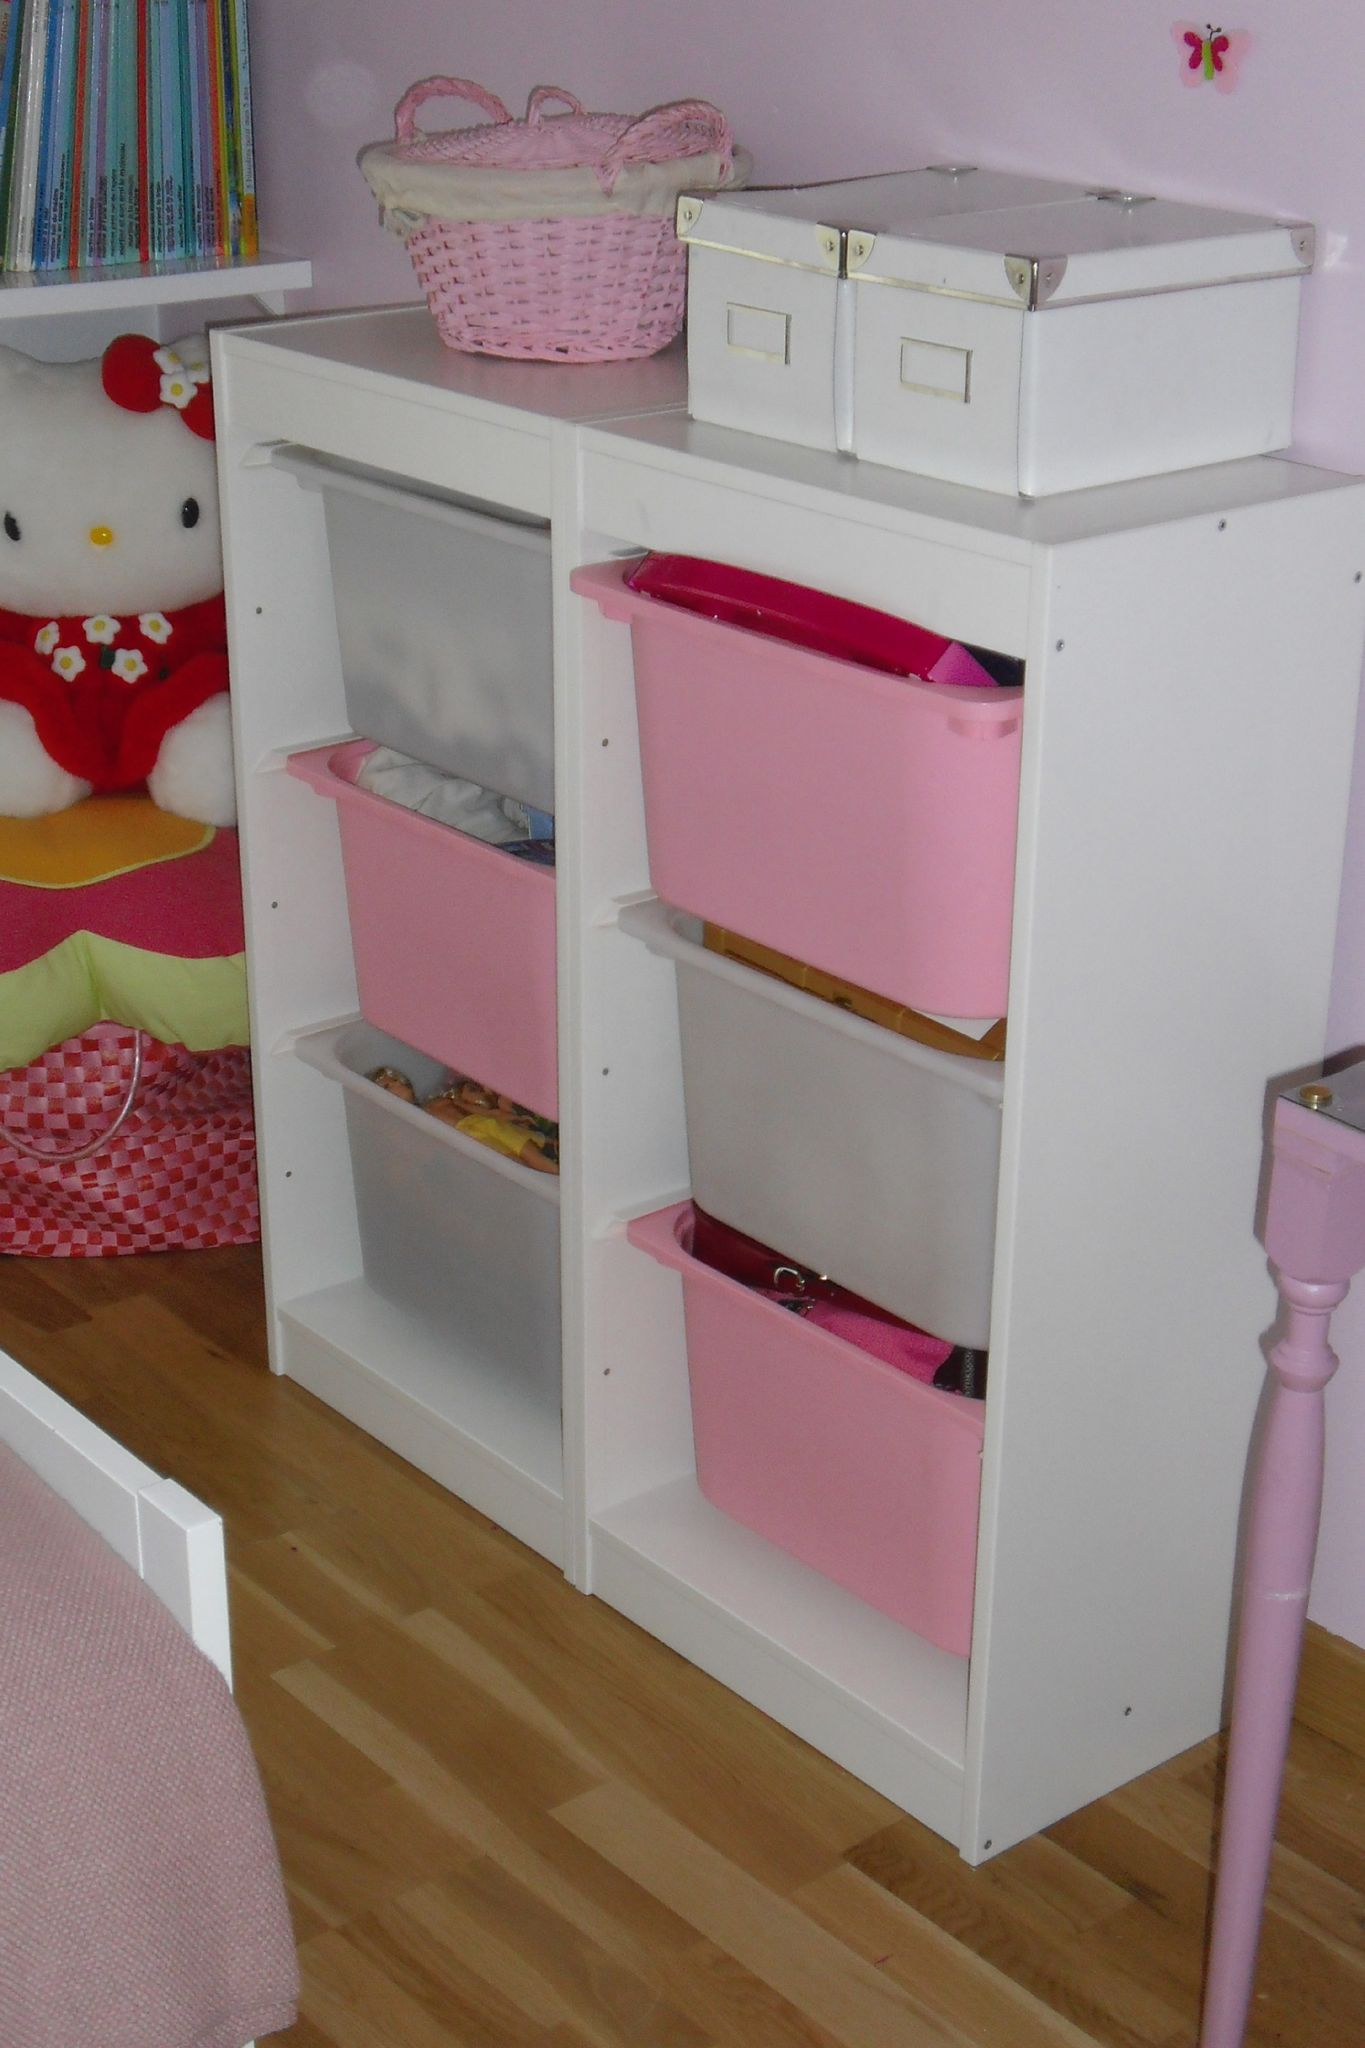 comment organiser et ranger une chambre d 39 enfant mon blabla de fille. Black Bedroom Furniture Sets. Home Design Ideas